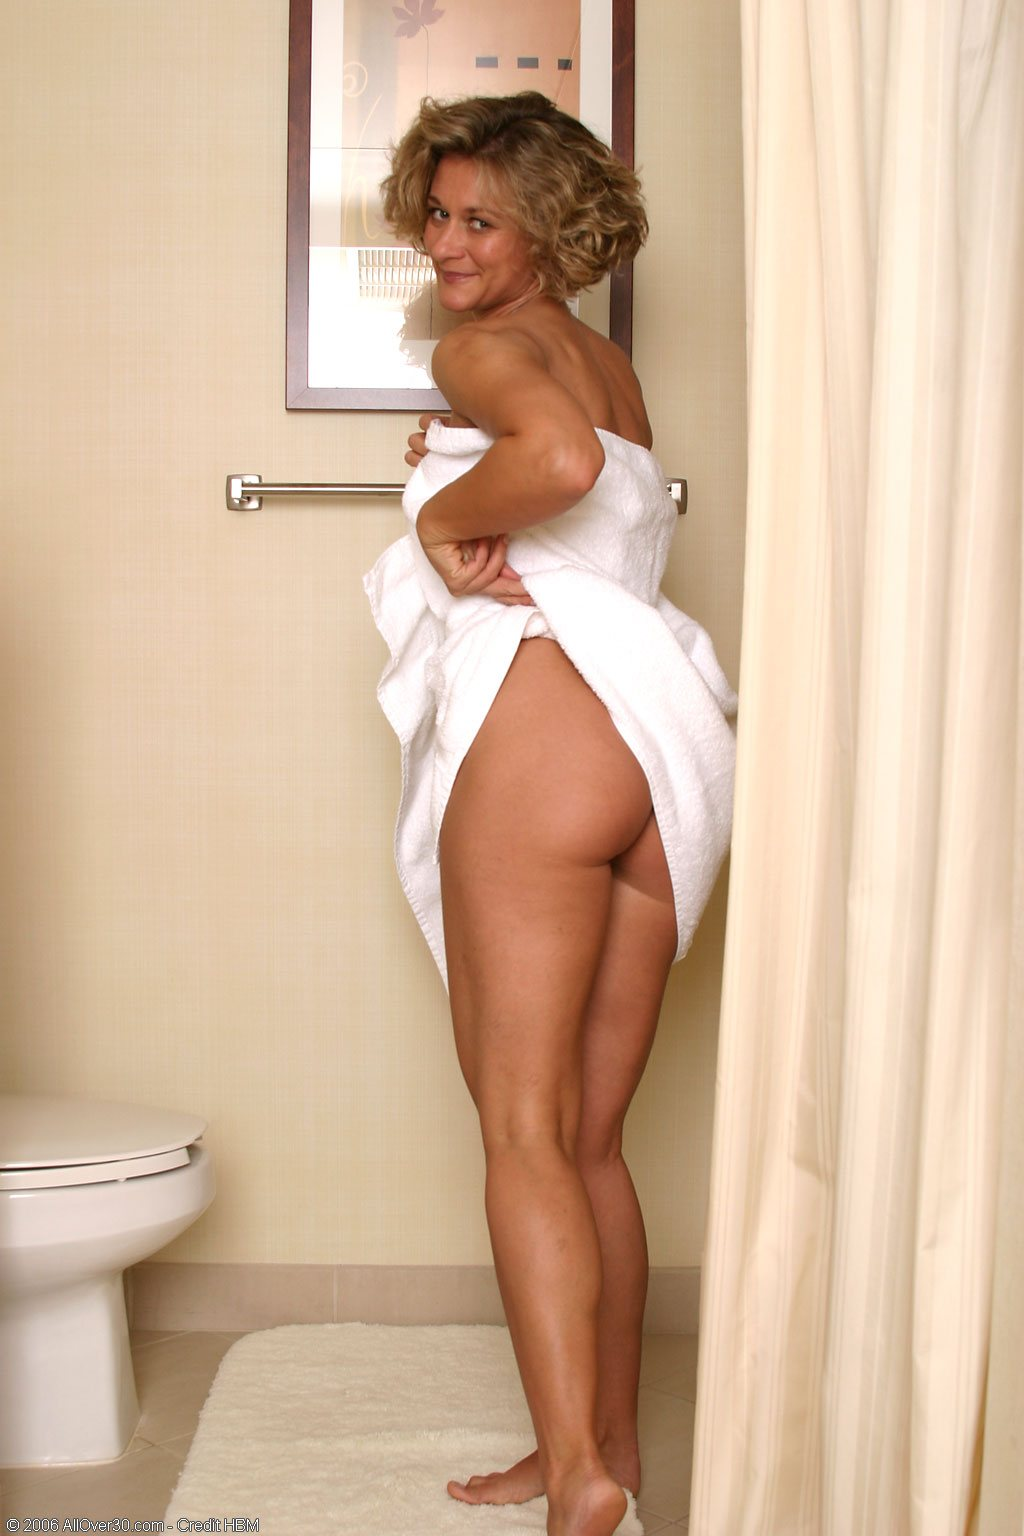 Sexi Naked Women In Towels